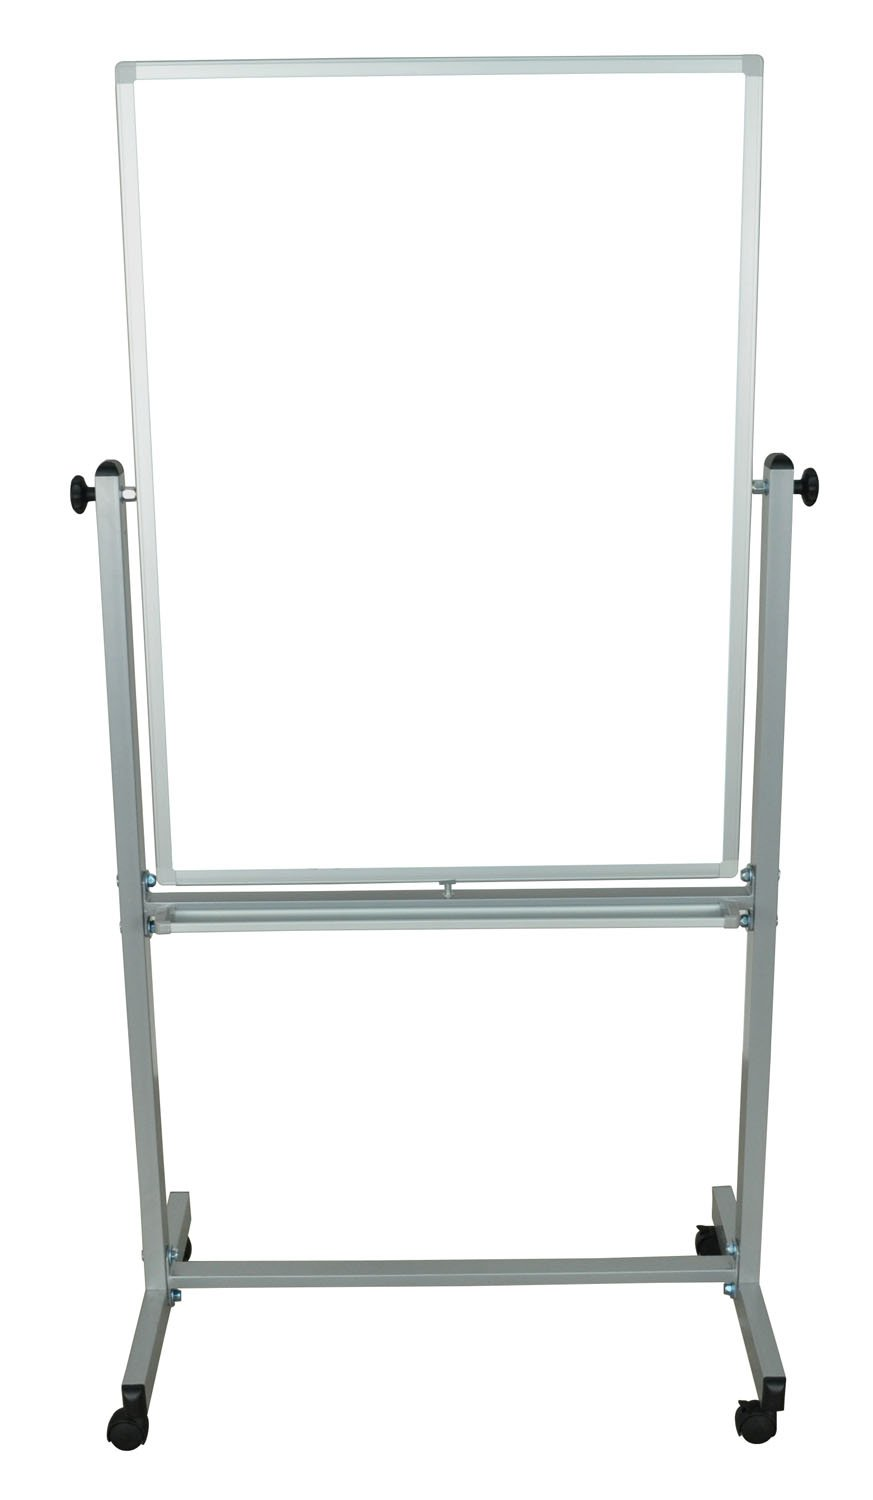 LUXOR MB3040WW Reversible Magnetic Whiteboard by Luxor